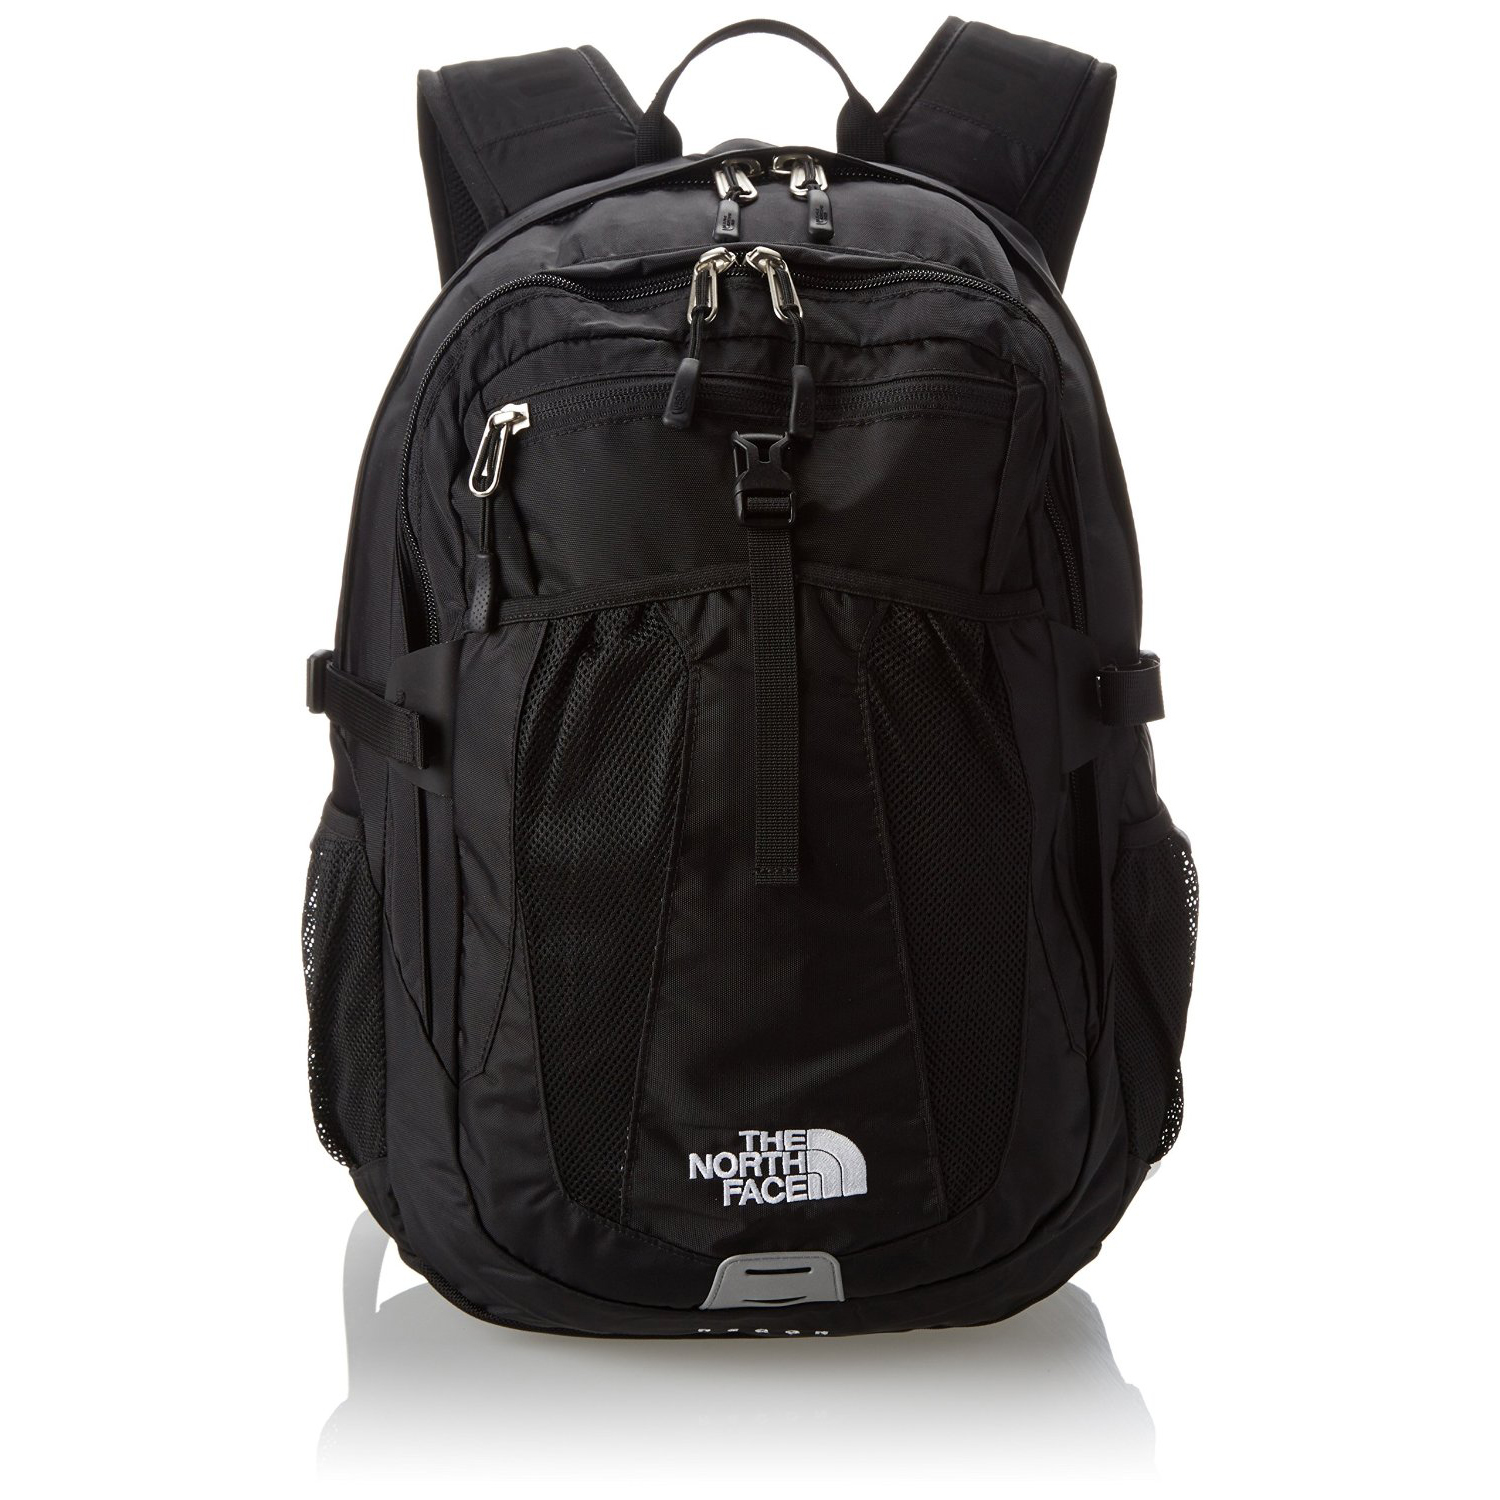 ae8225525 North Face Recon Backpack Features - CEAGESP